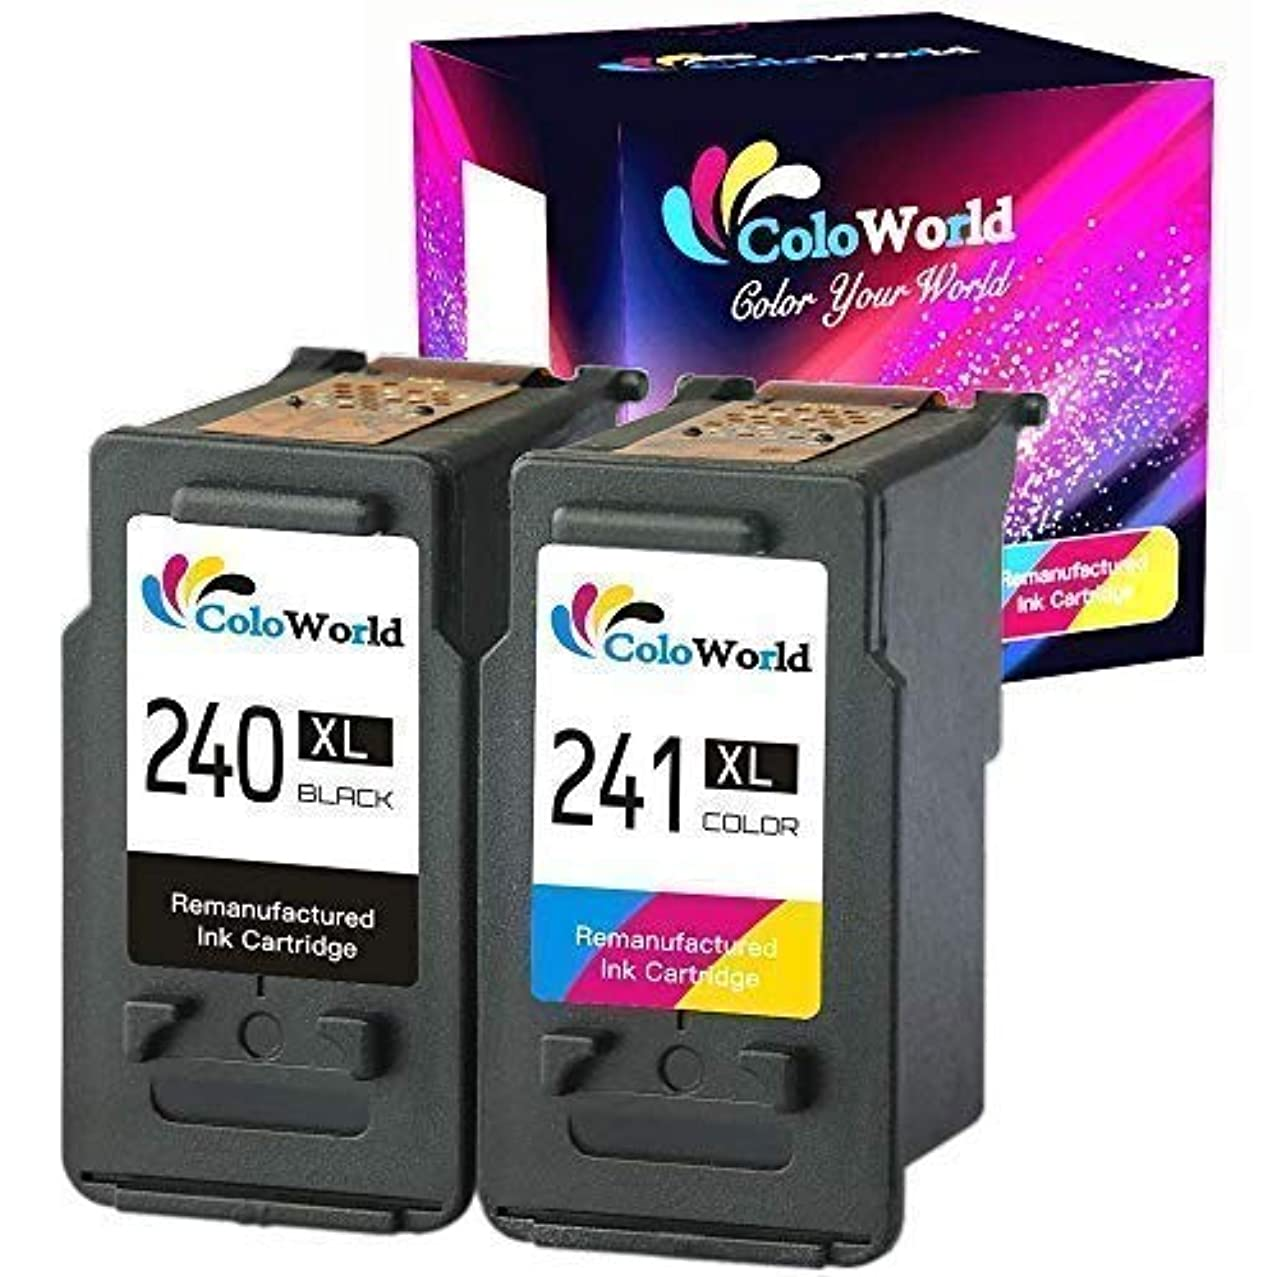 ColoWorld Remanufactured 240XL 241XL Black and Tri-Color Ink Cartridge Combo Pack High Yield Replacement for PG-240XL CL-241XL Used to Pixma MX472 MX452 MX522 MX459 MX532 MX432 MX479